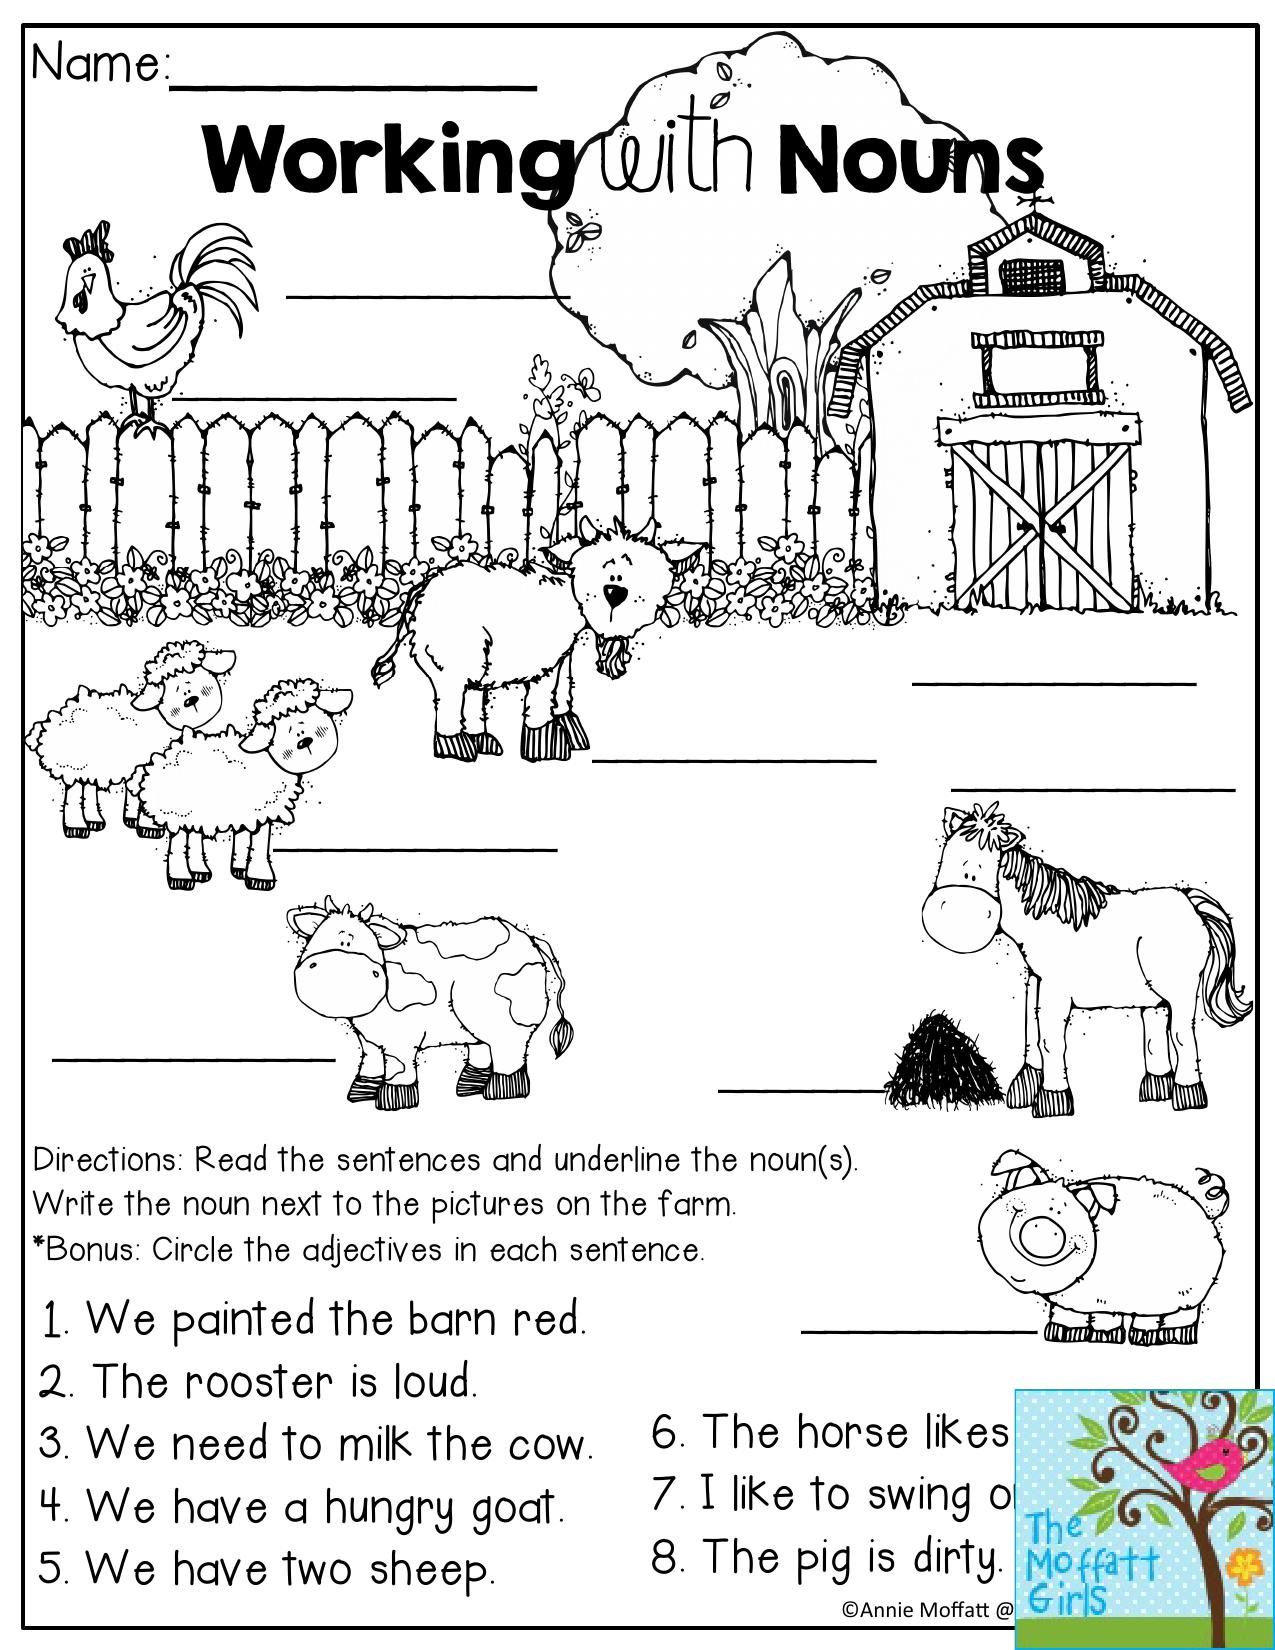 Working With Nouns On The Farm Read The Sentences And